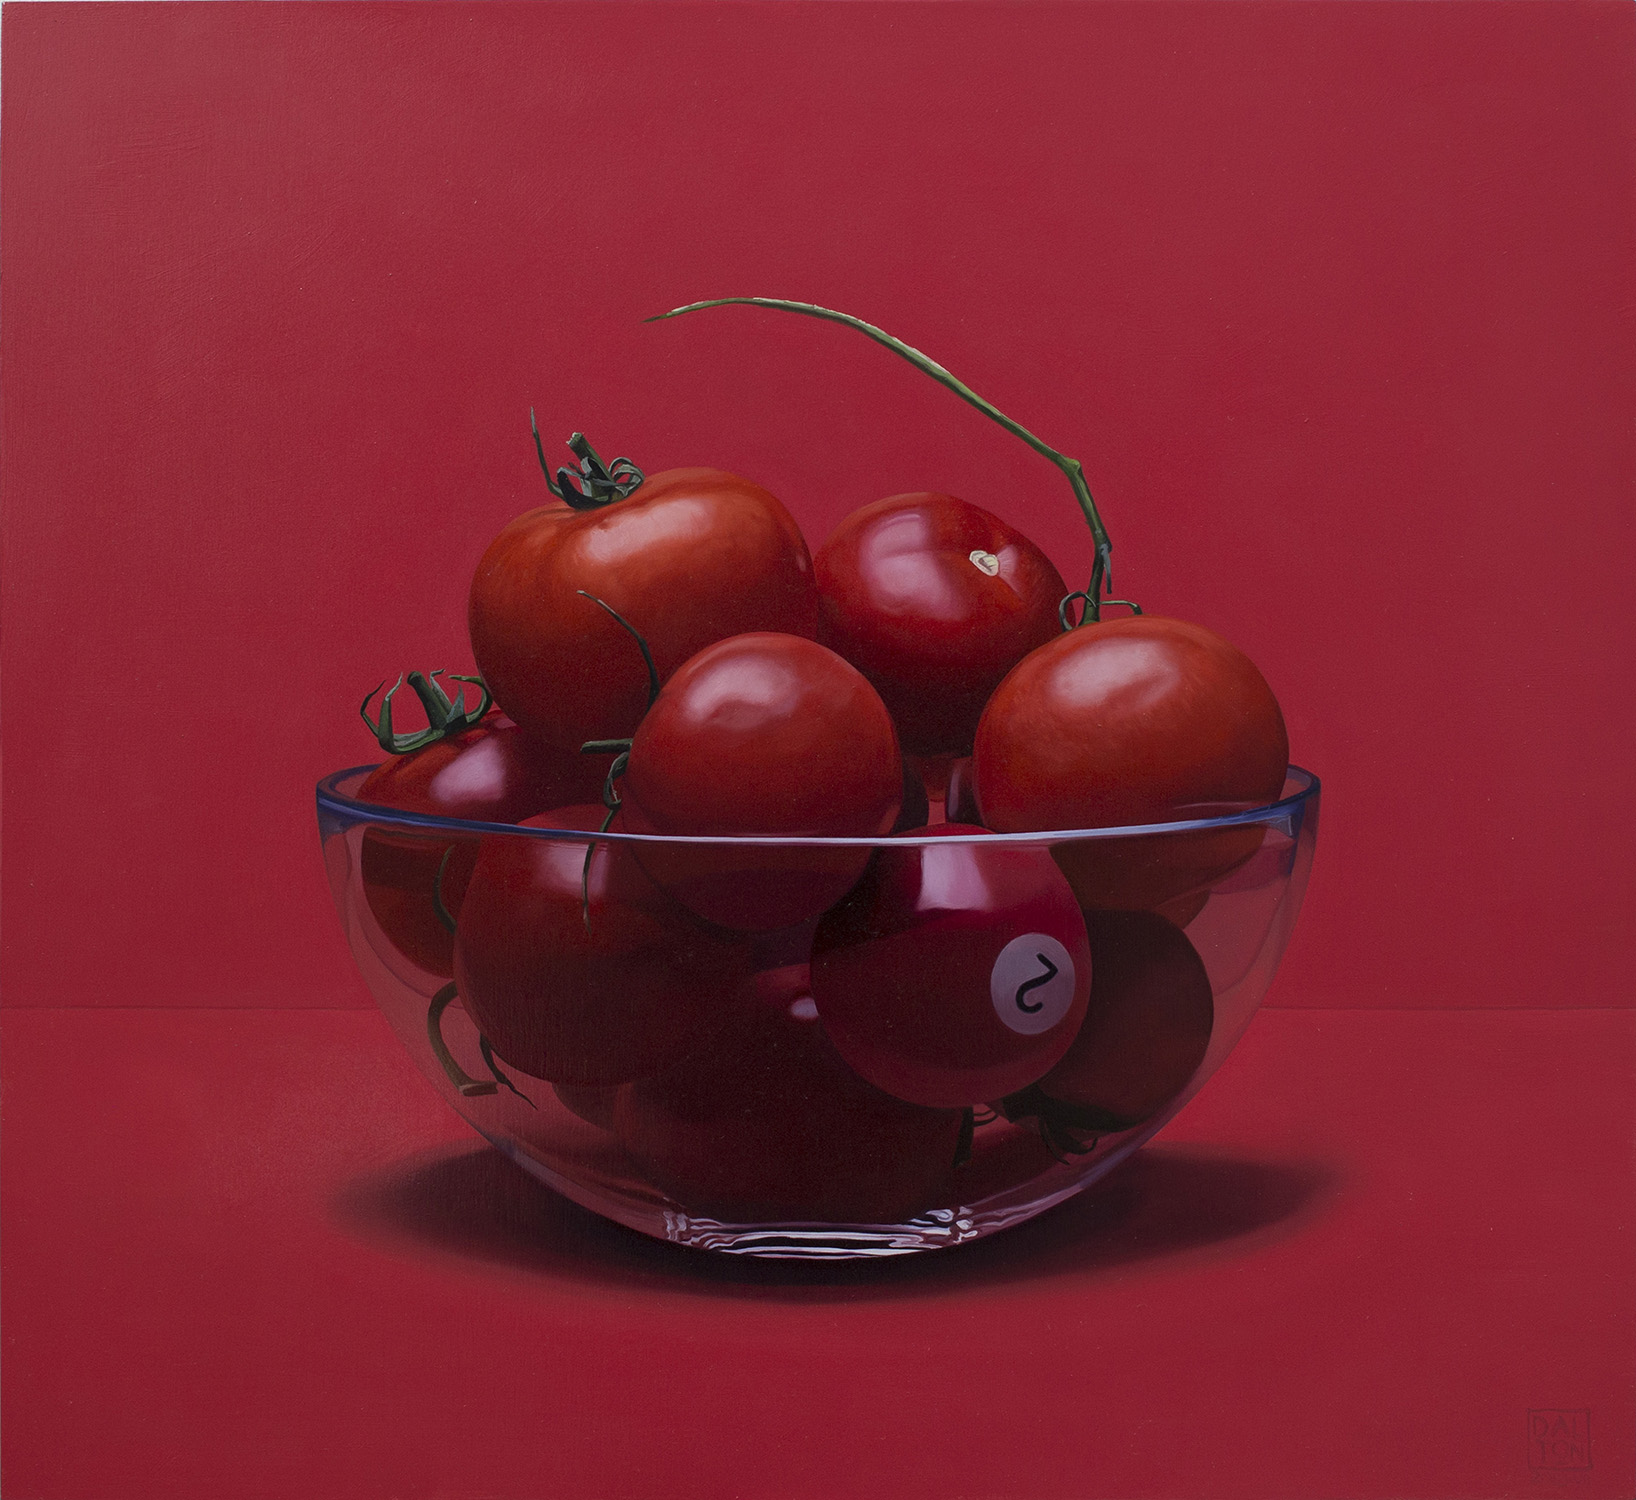 Tomato to Corner Pocket Jonathan Dalton 55x60cm Oil on board 01.jpg